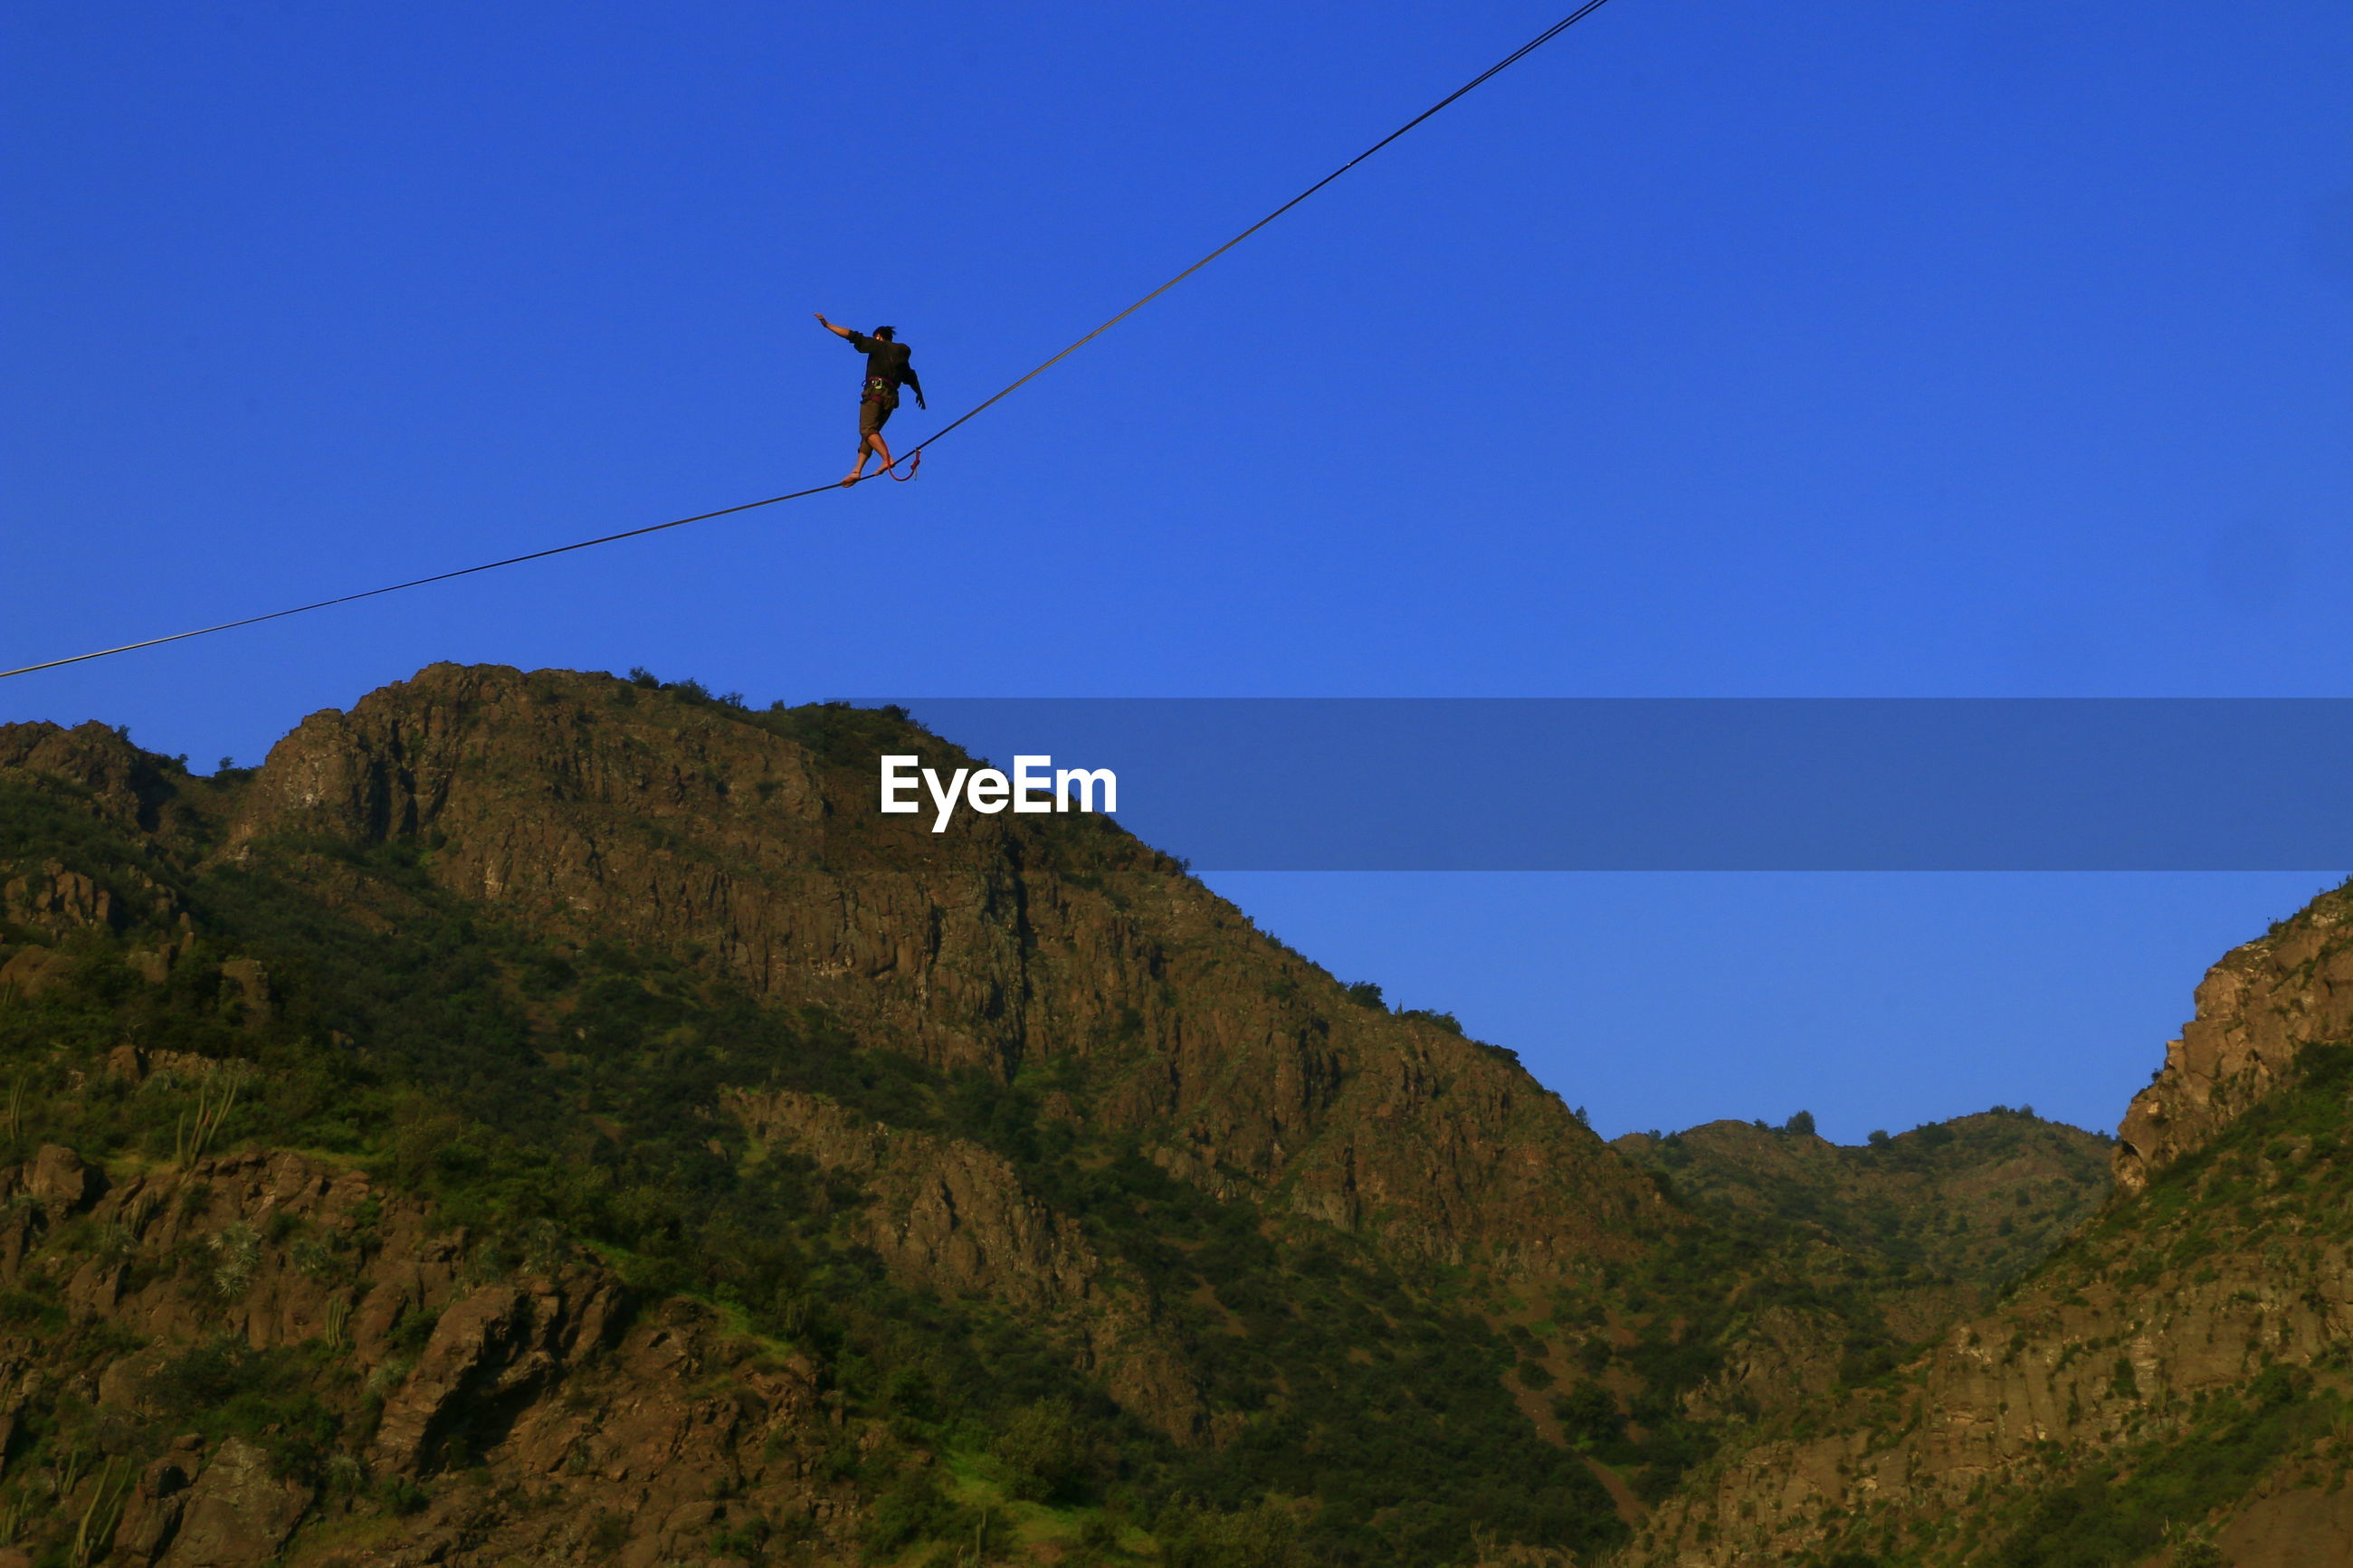 Low angle view of man walking on slackline over mountains against clear sky